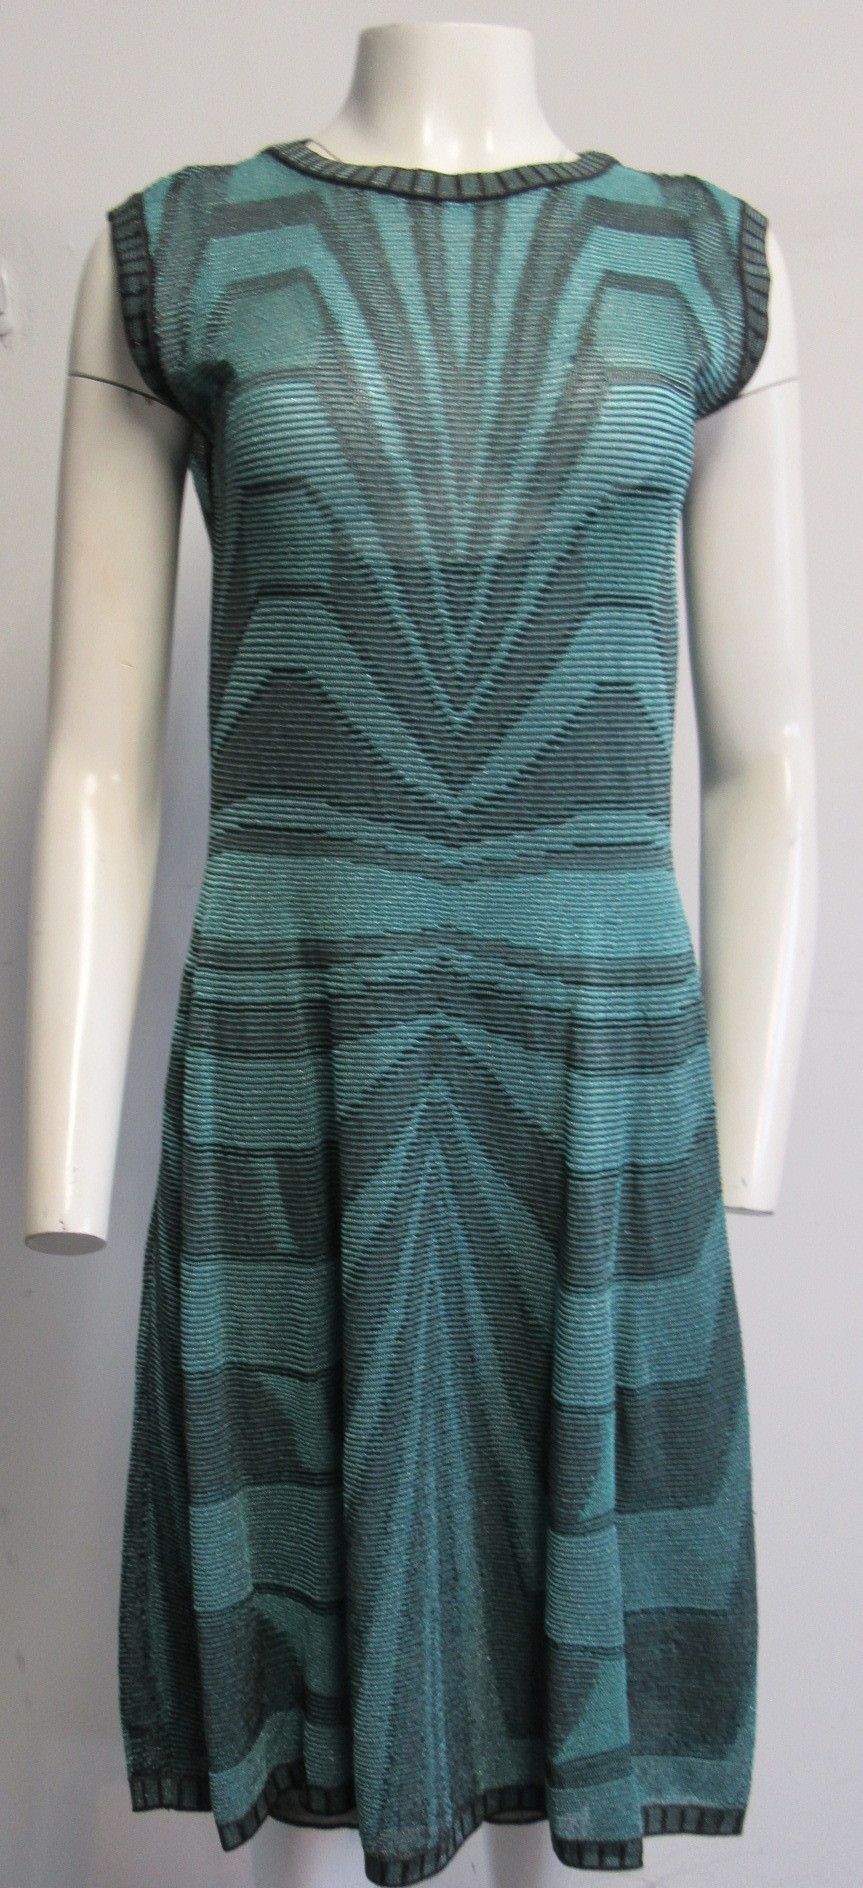 57675e6c89 Details about M MISSONI turquoise blue/black geometric print dress SZ 48/L